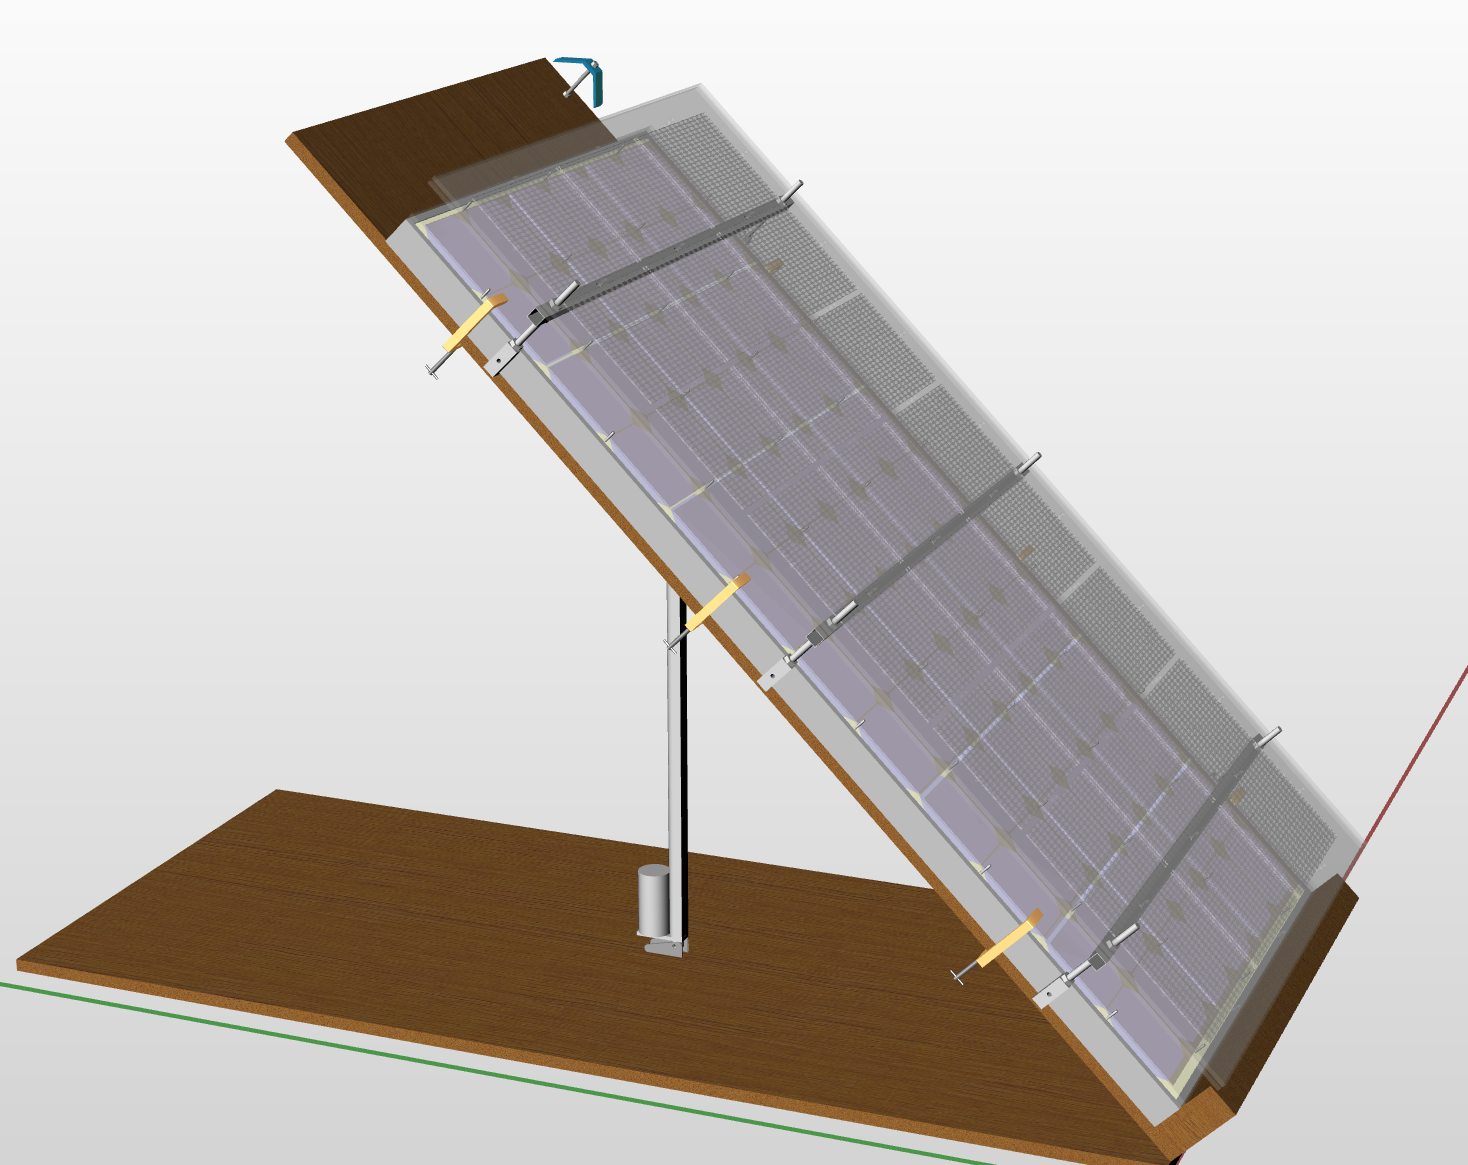 3D model of a solar panel with the PSC™ glass coating